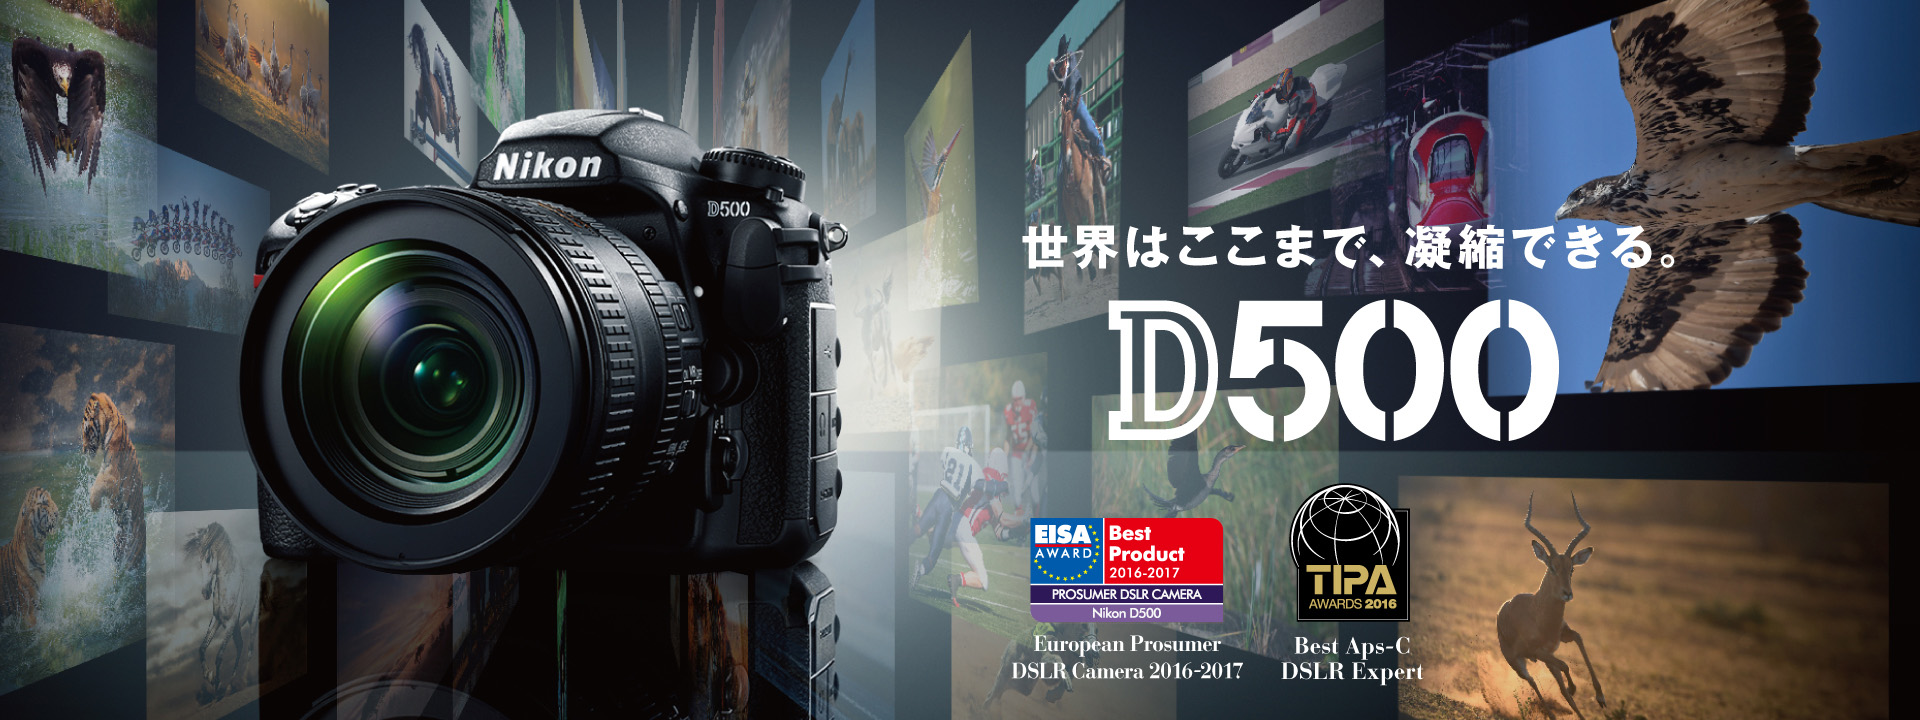 http://imgsv.nikon-image.com/products/slr/lineup/d500/img/index/main_01_award.jpg